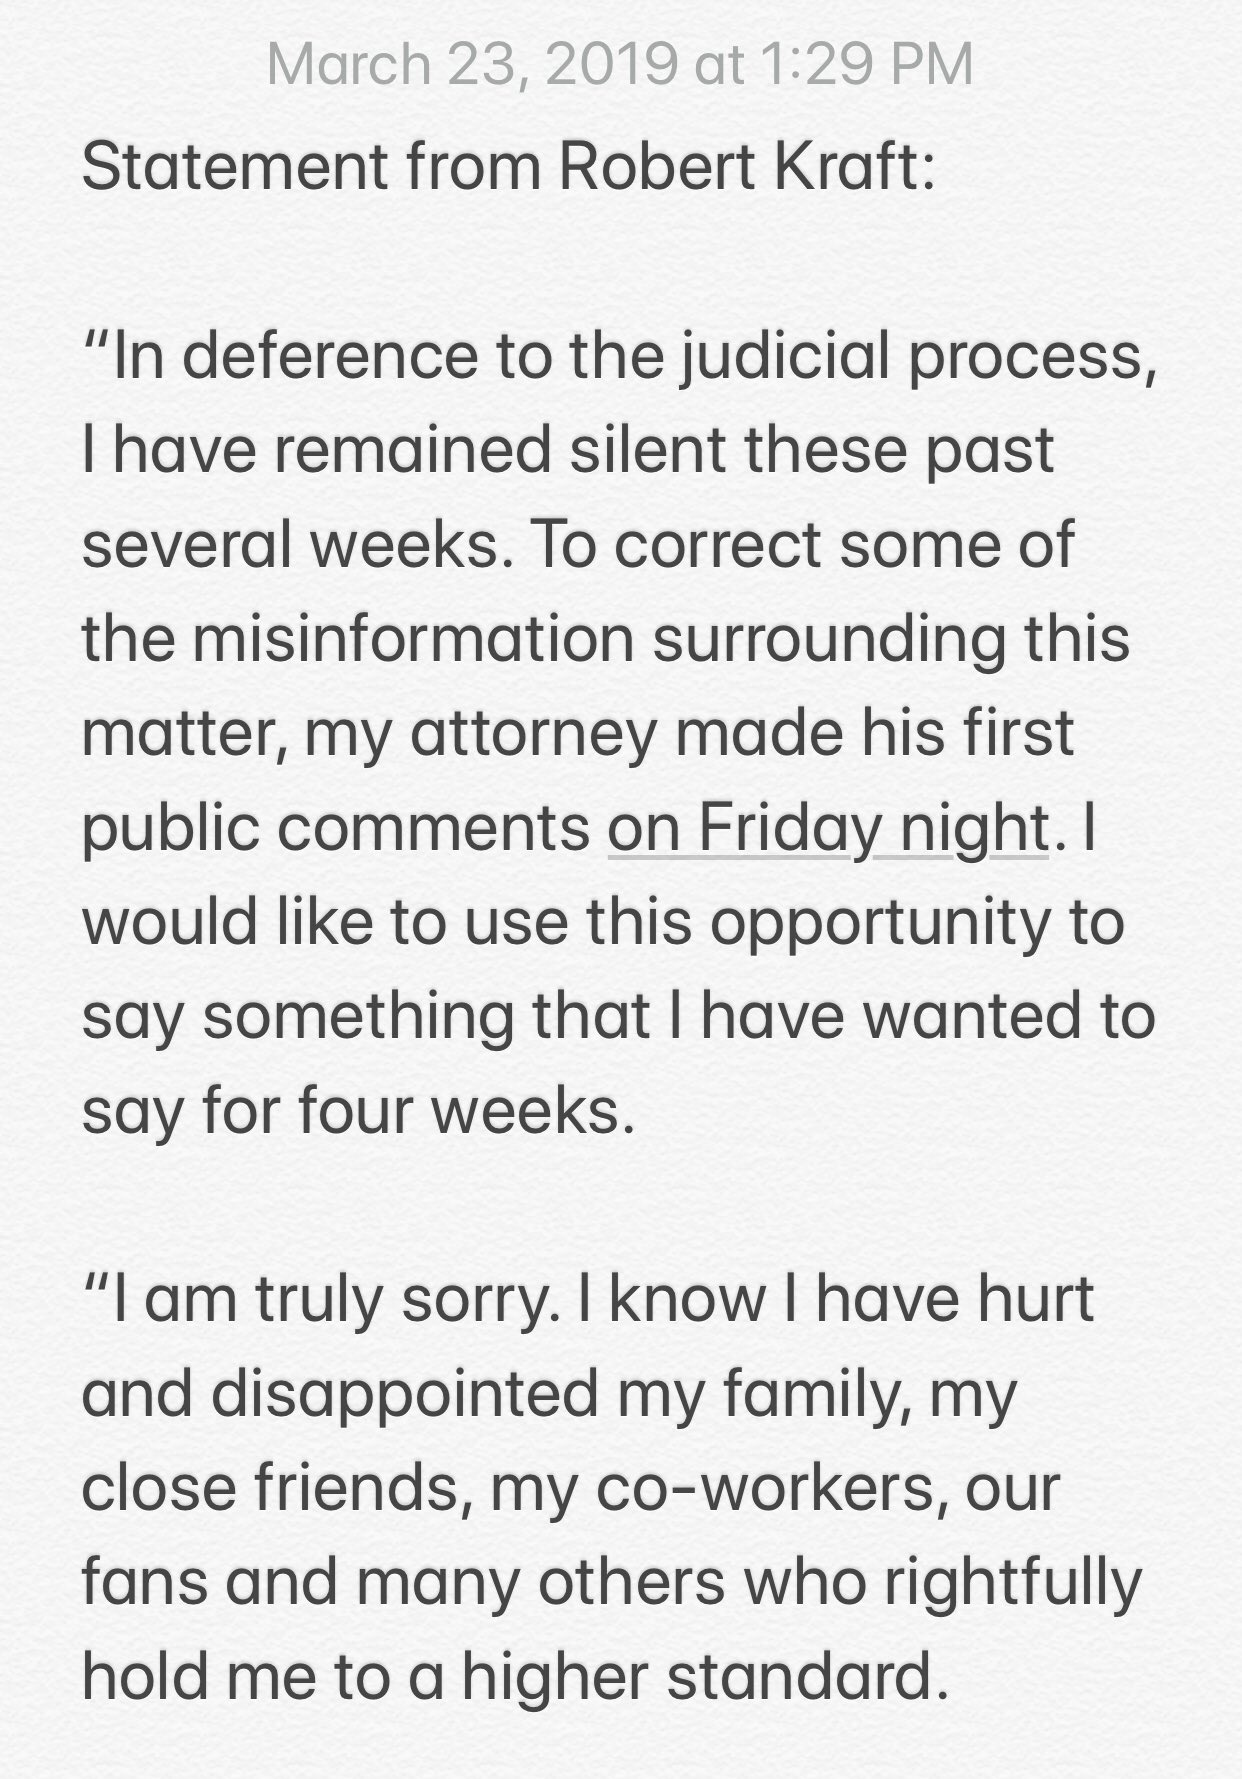 Statement from Patriots' owner Robert Kraft: https://t.co/GiswaNQxh4